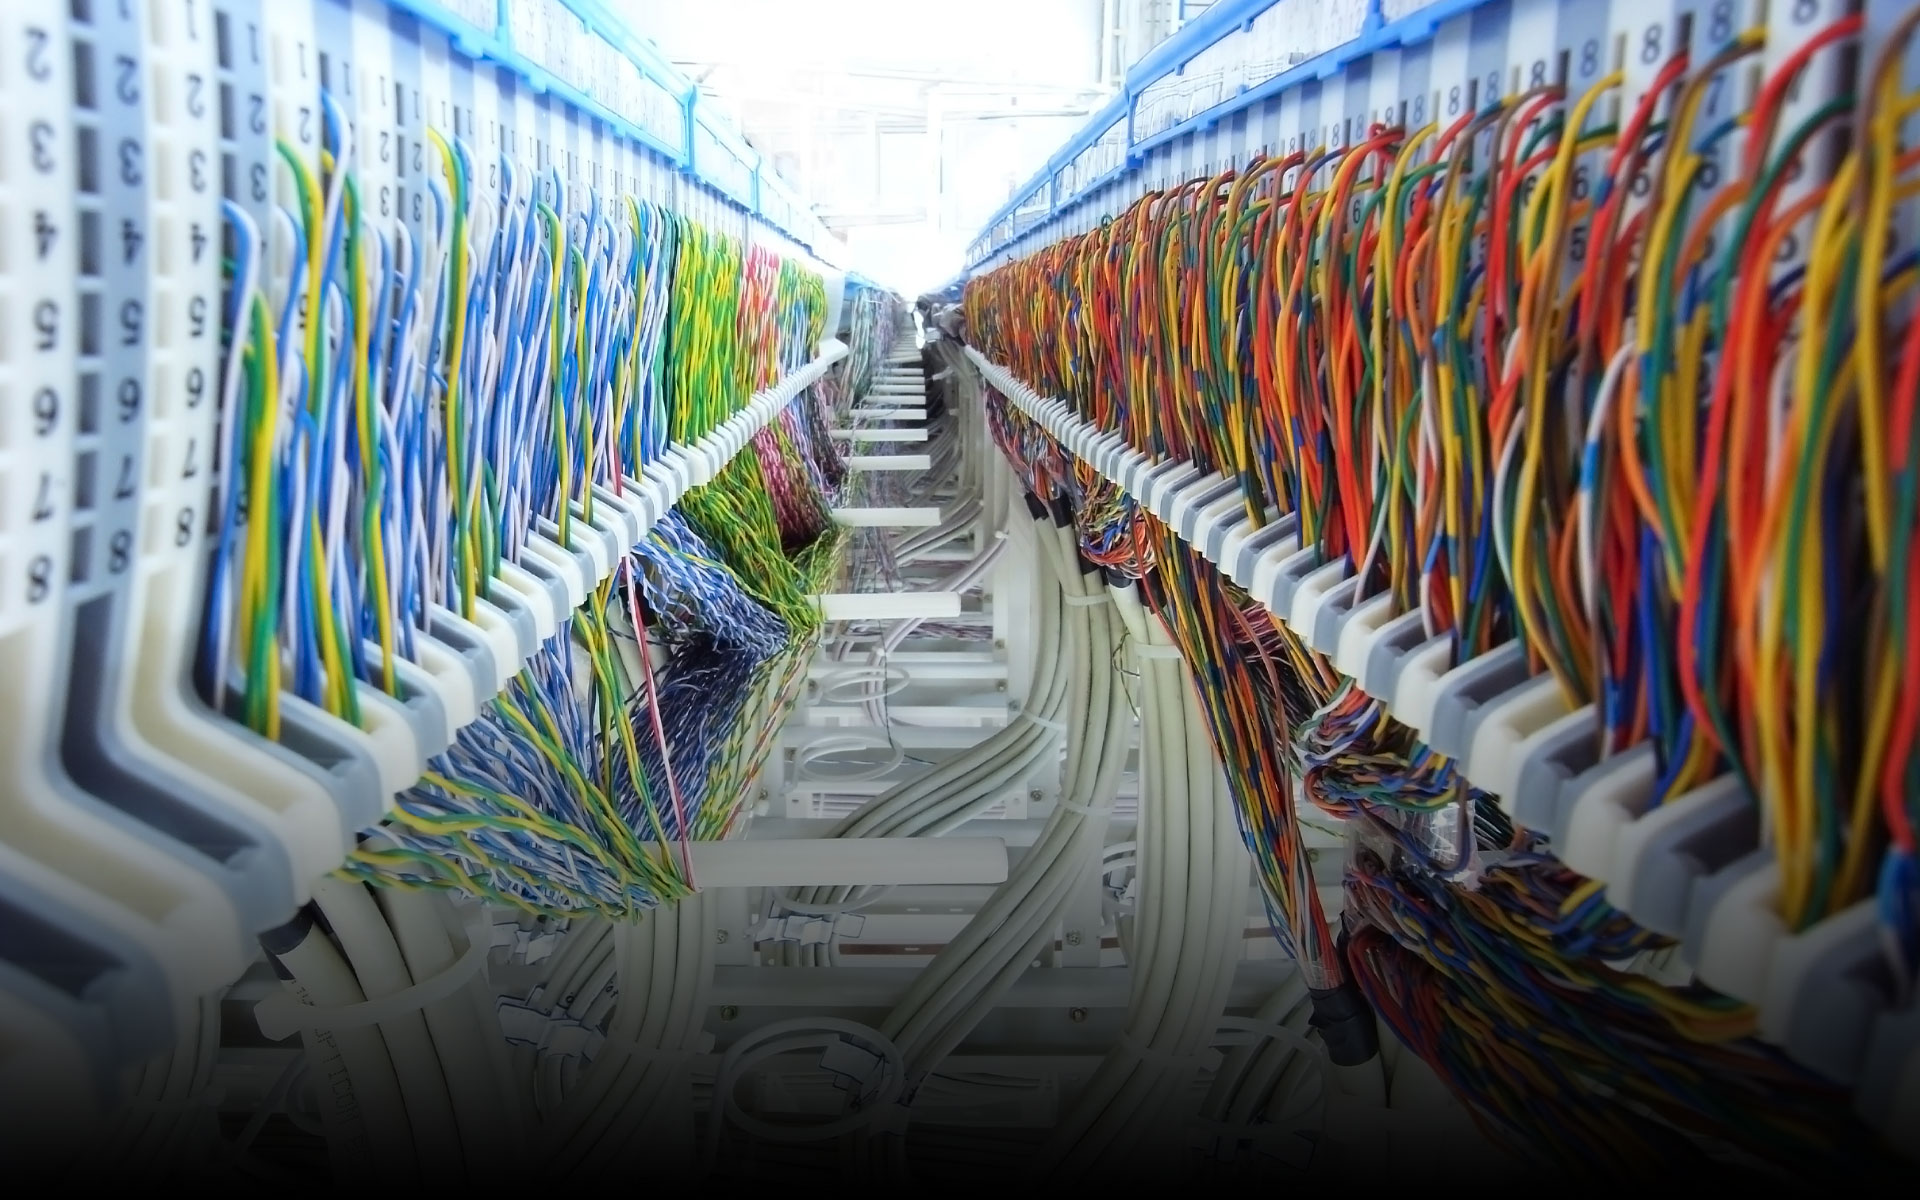 hight resolution of cabling 01